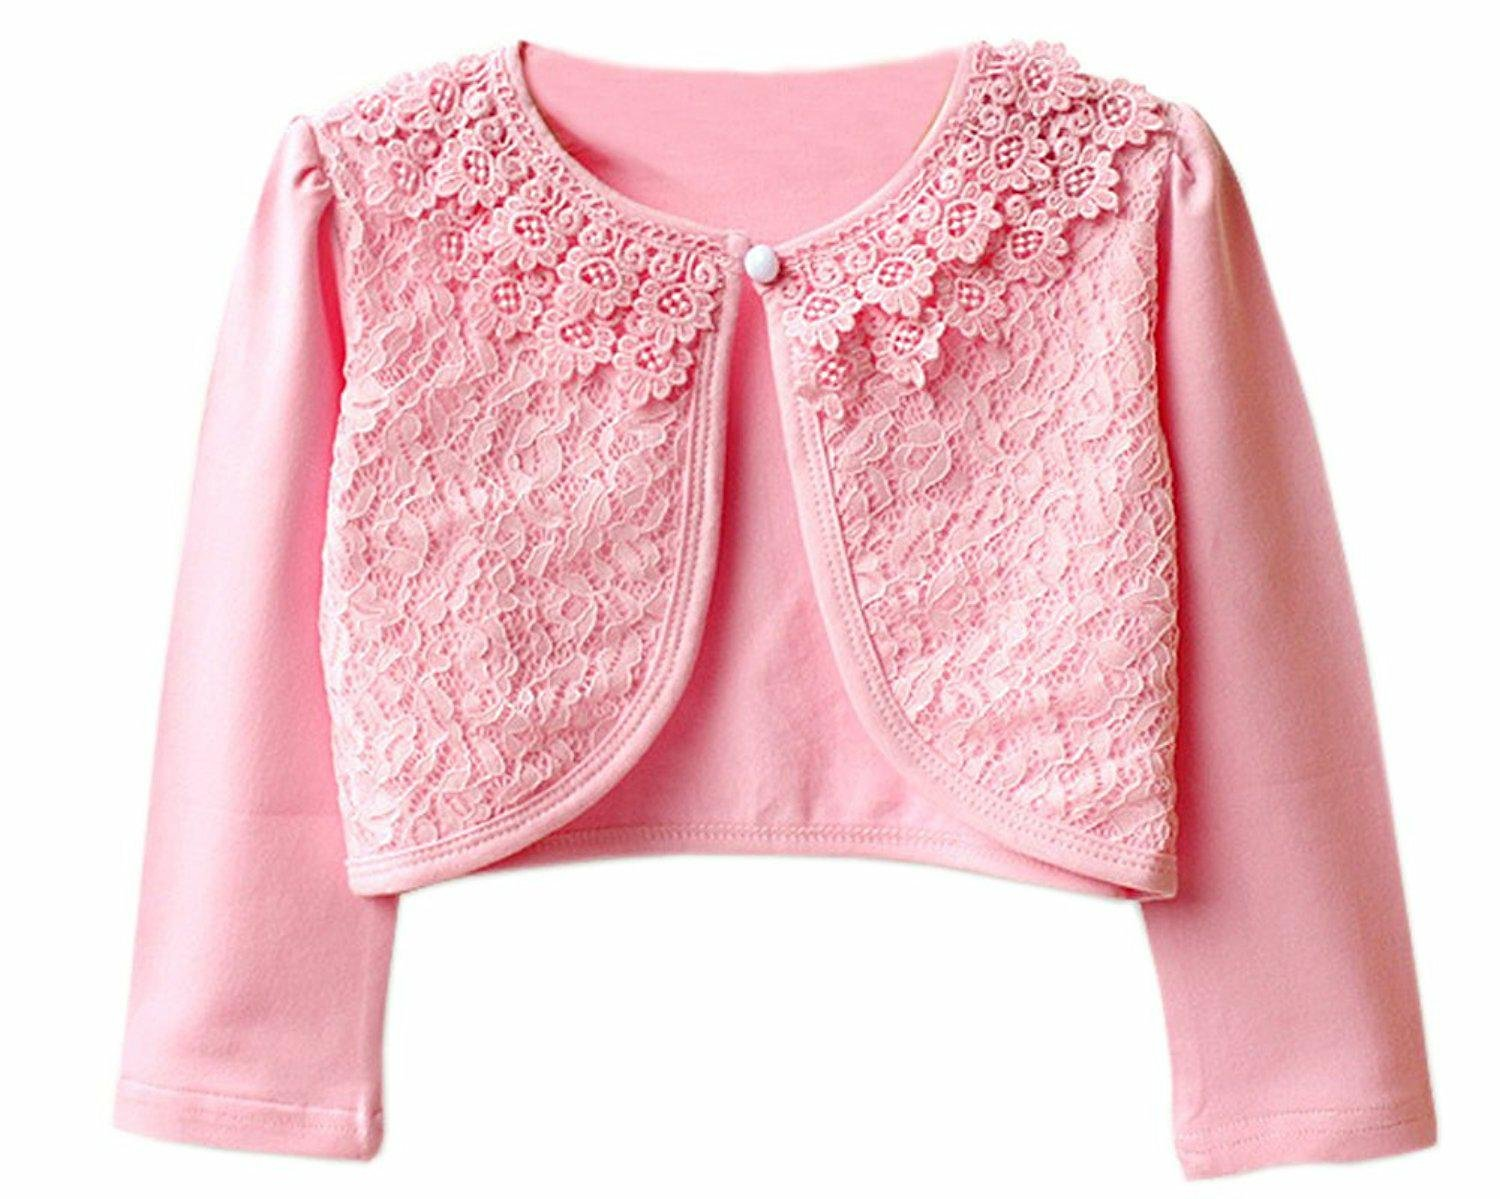 JX Roco Little Girls Long Sleeve Lace Bolero Jacket/Pointelle Shrug Cotton Cardigan Dress Cover Up for Church Wedding Pink,150=8-9years